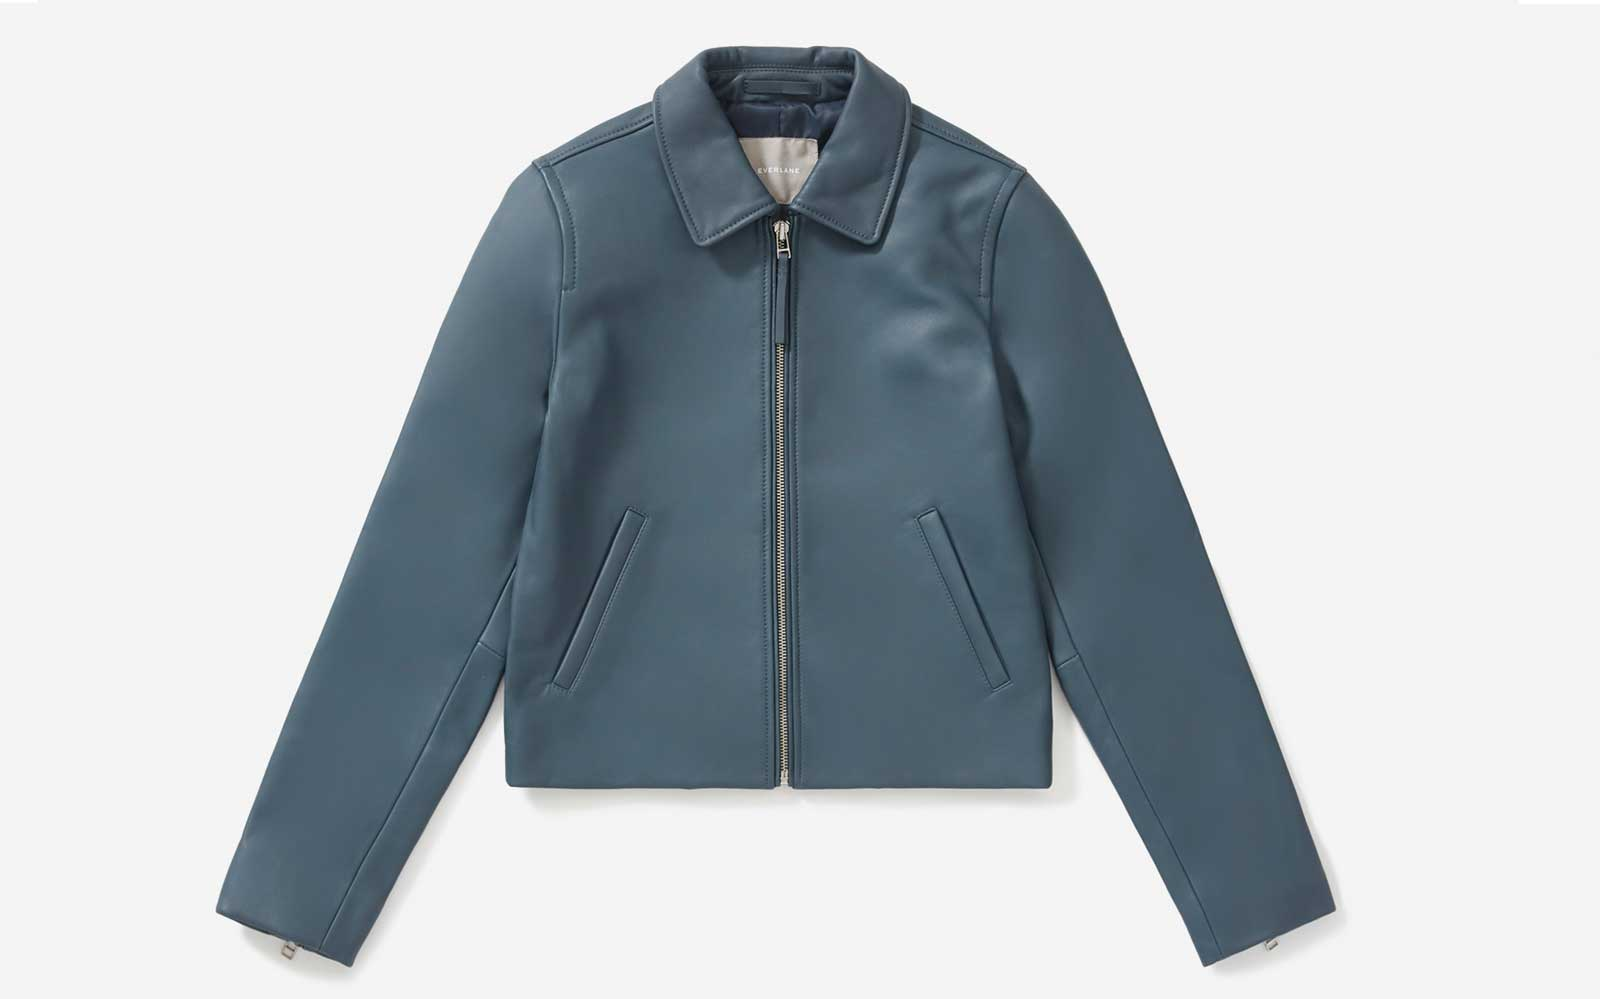 Everlane just released its first leather jacket — and it's a wardrobe staple